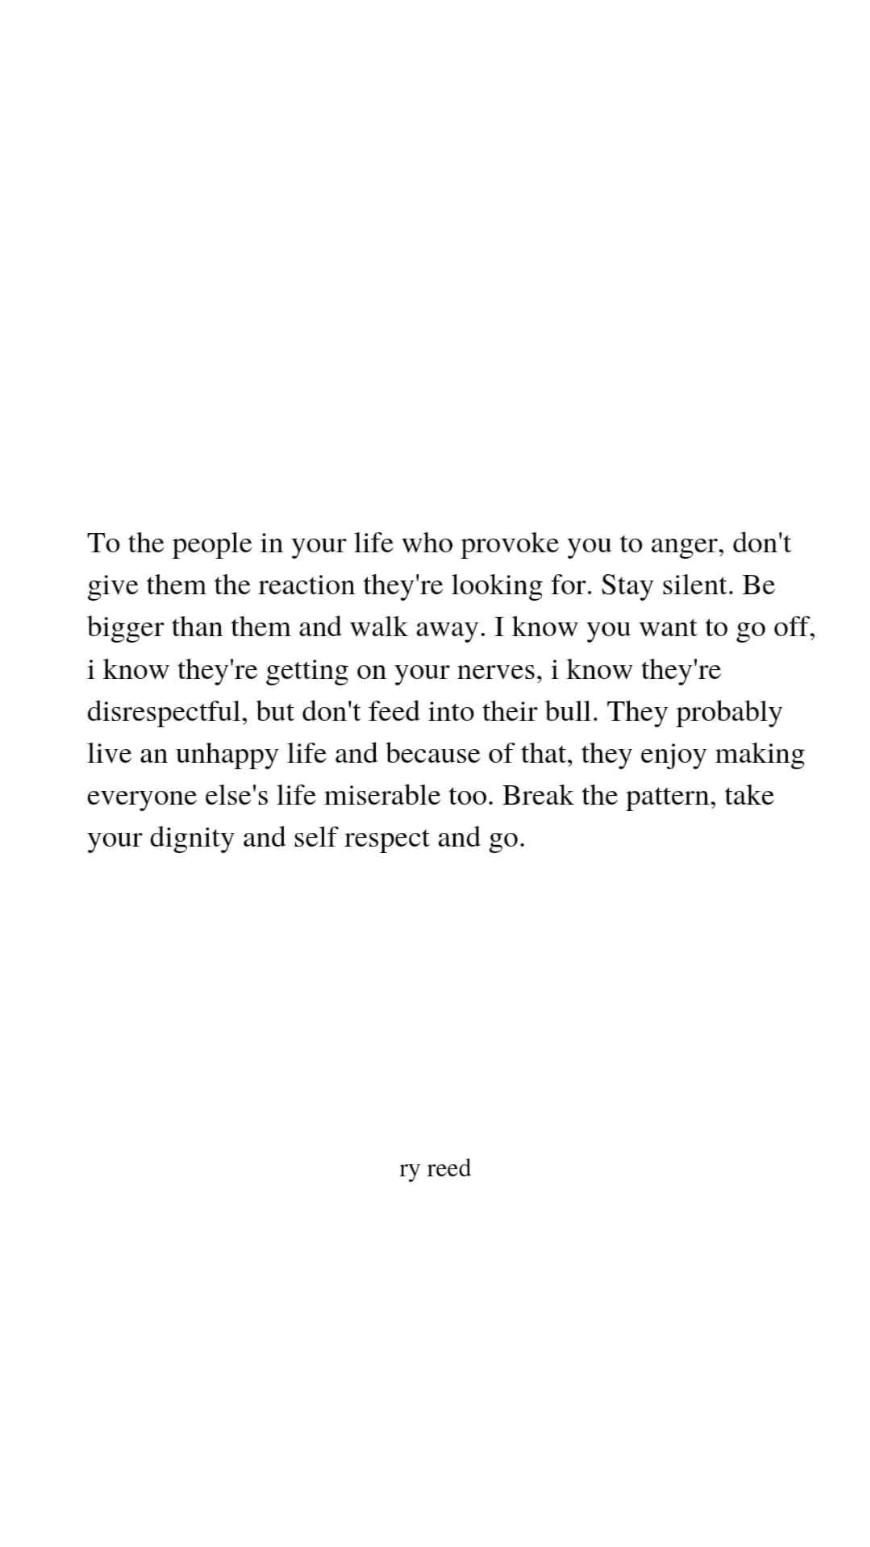 to the people in your life that provoke you